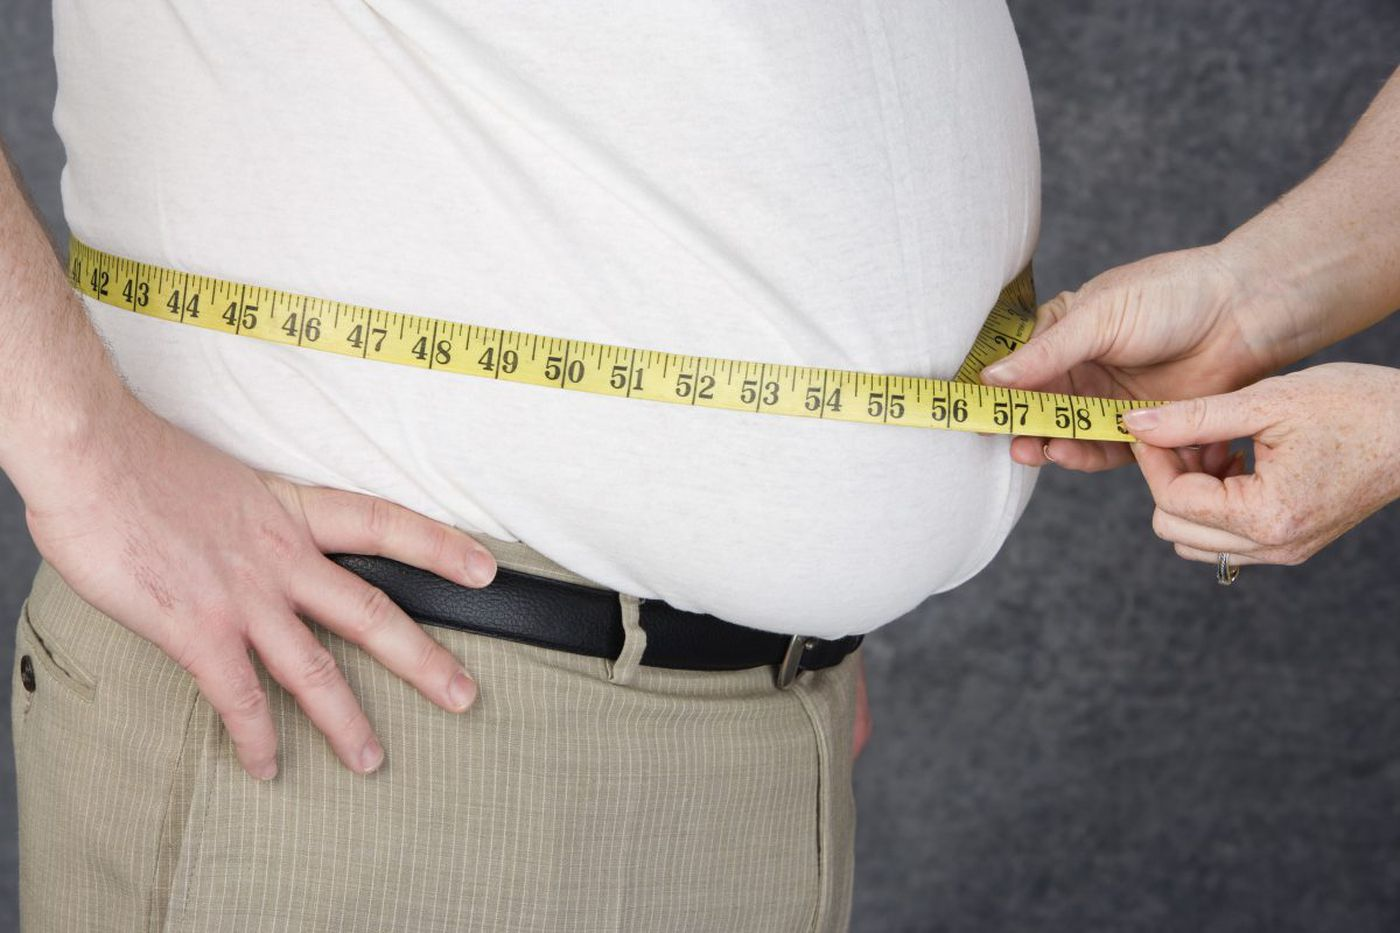 Joint replacement surgery doesn't work as well for obese patients, Penn study finds